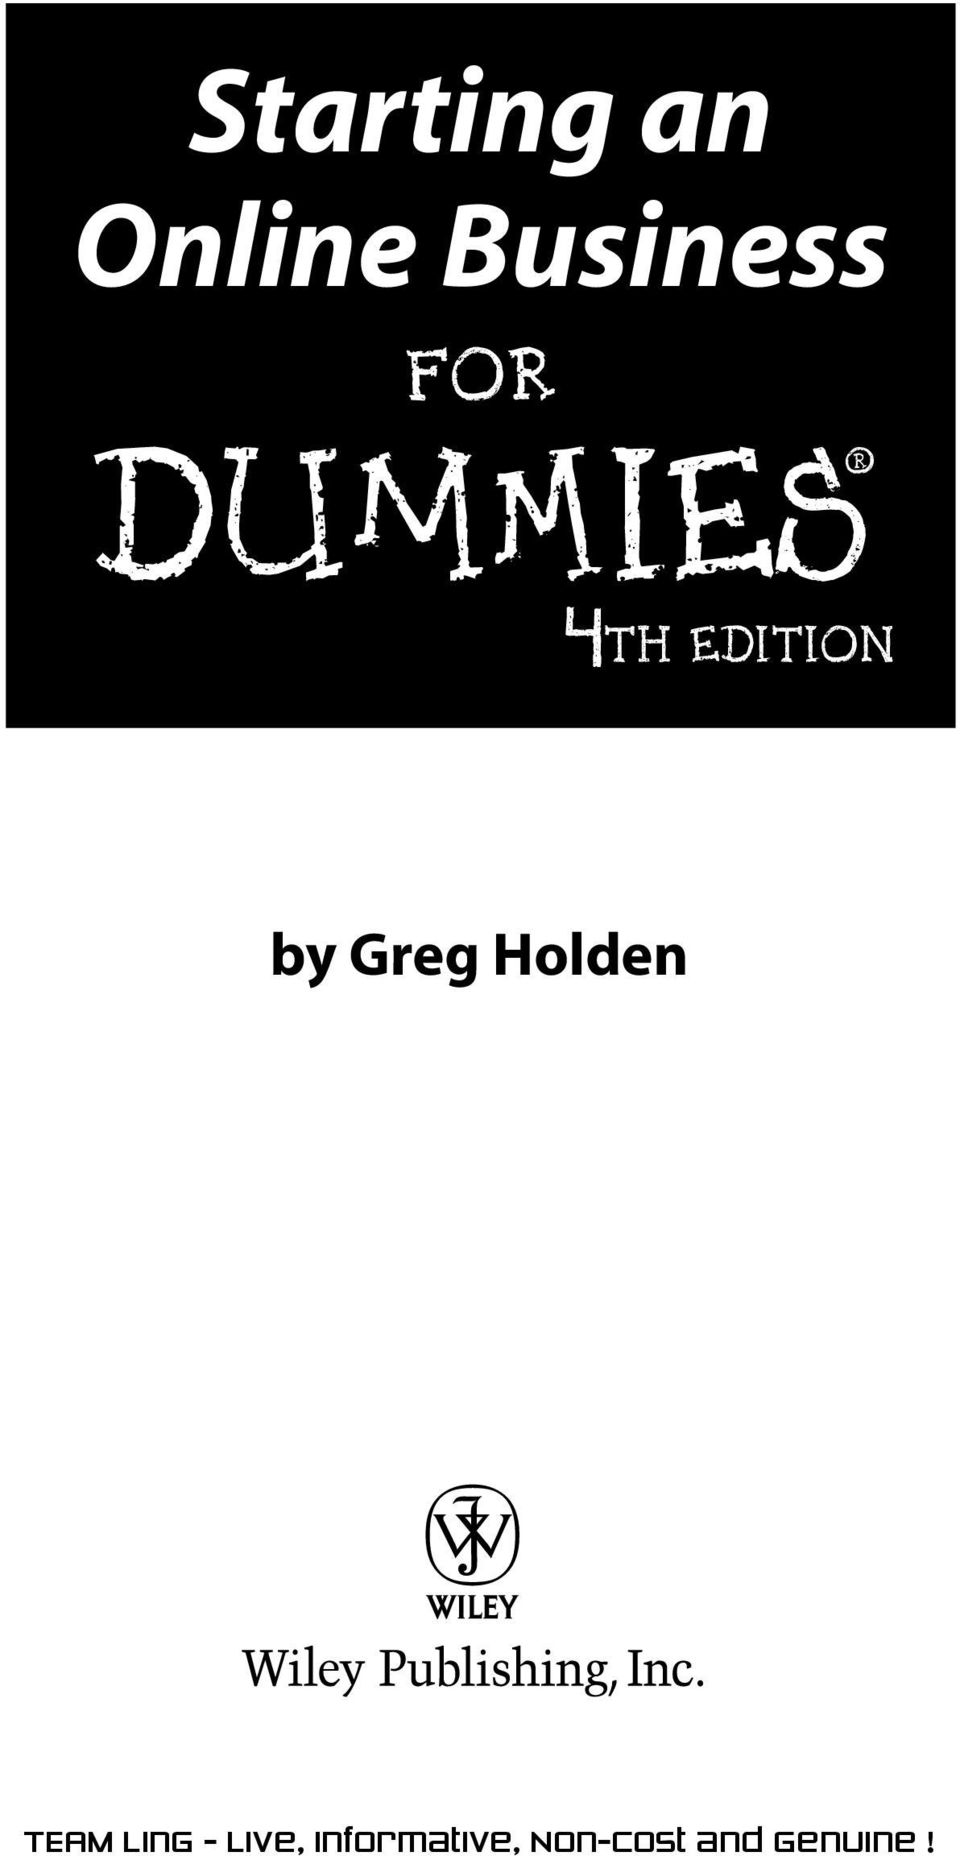 FOR DUMmIES 4TH